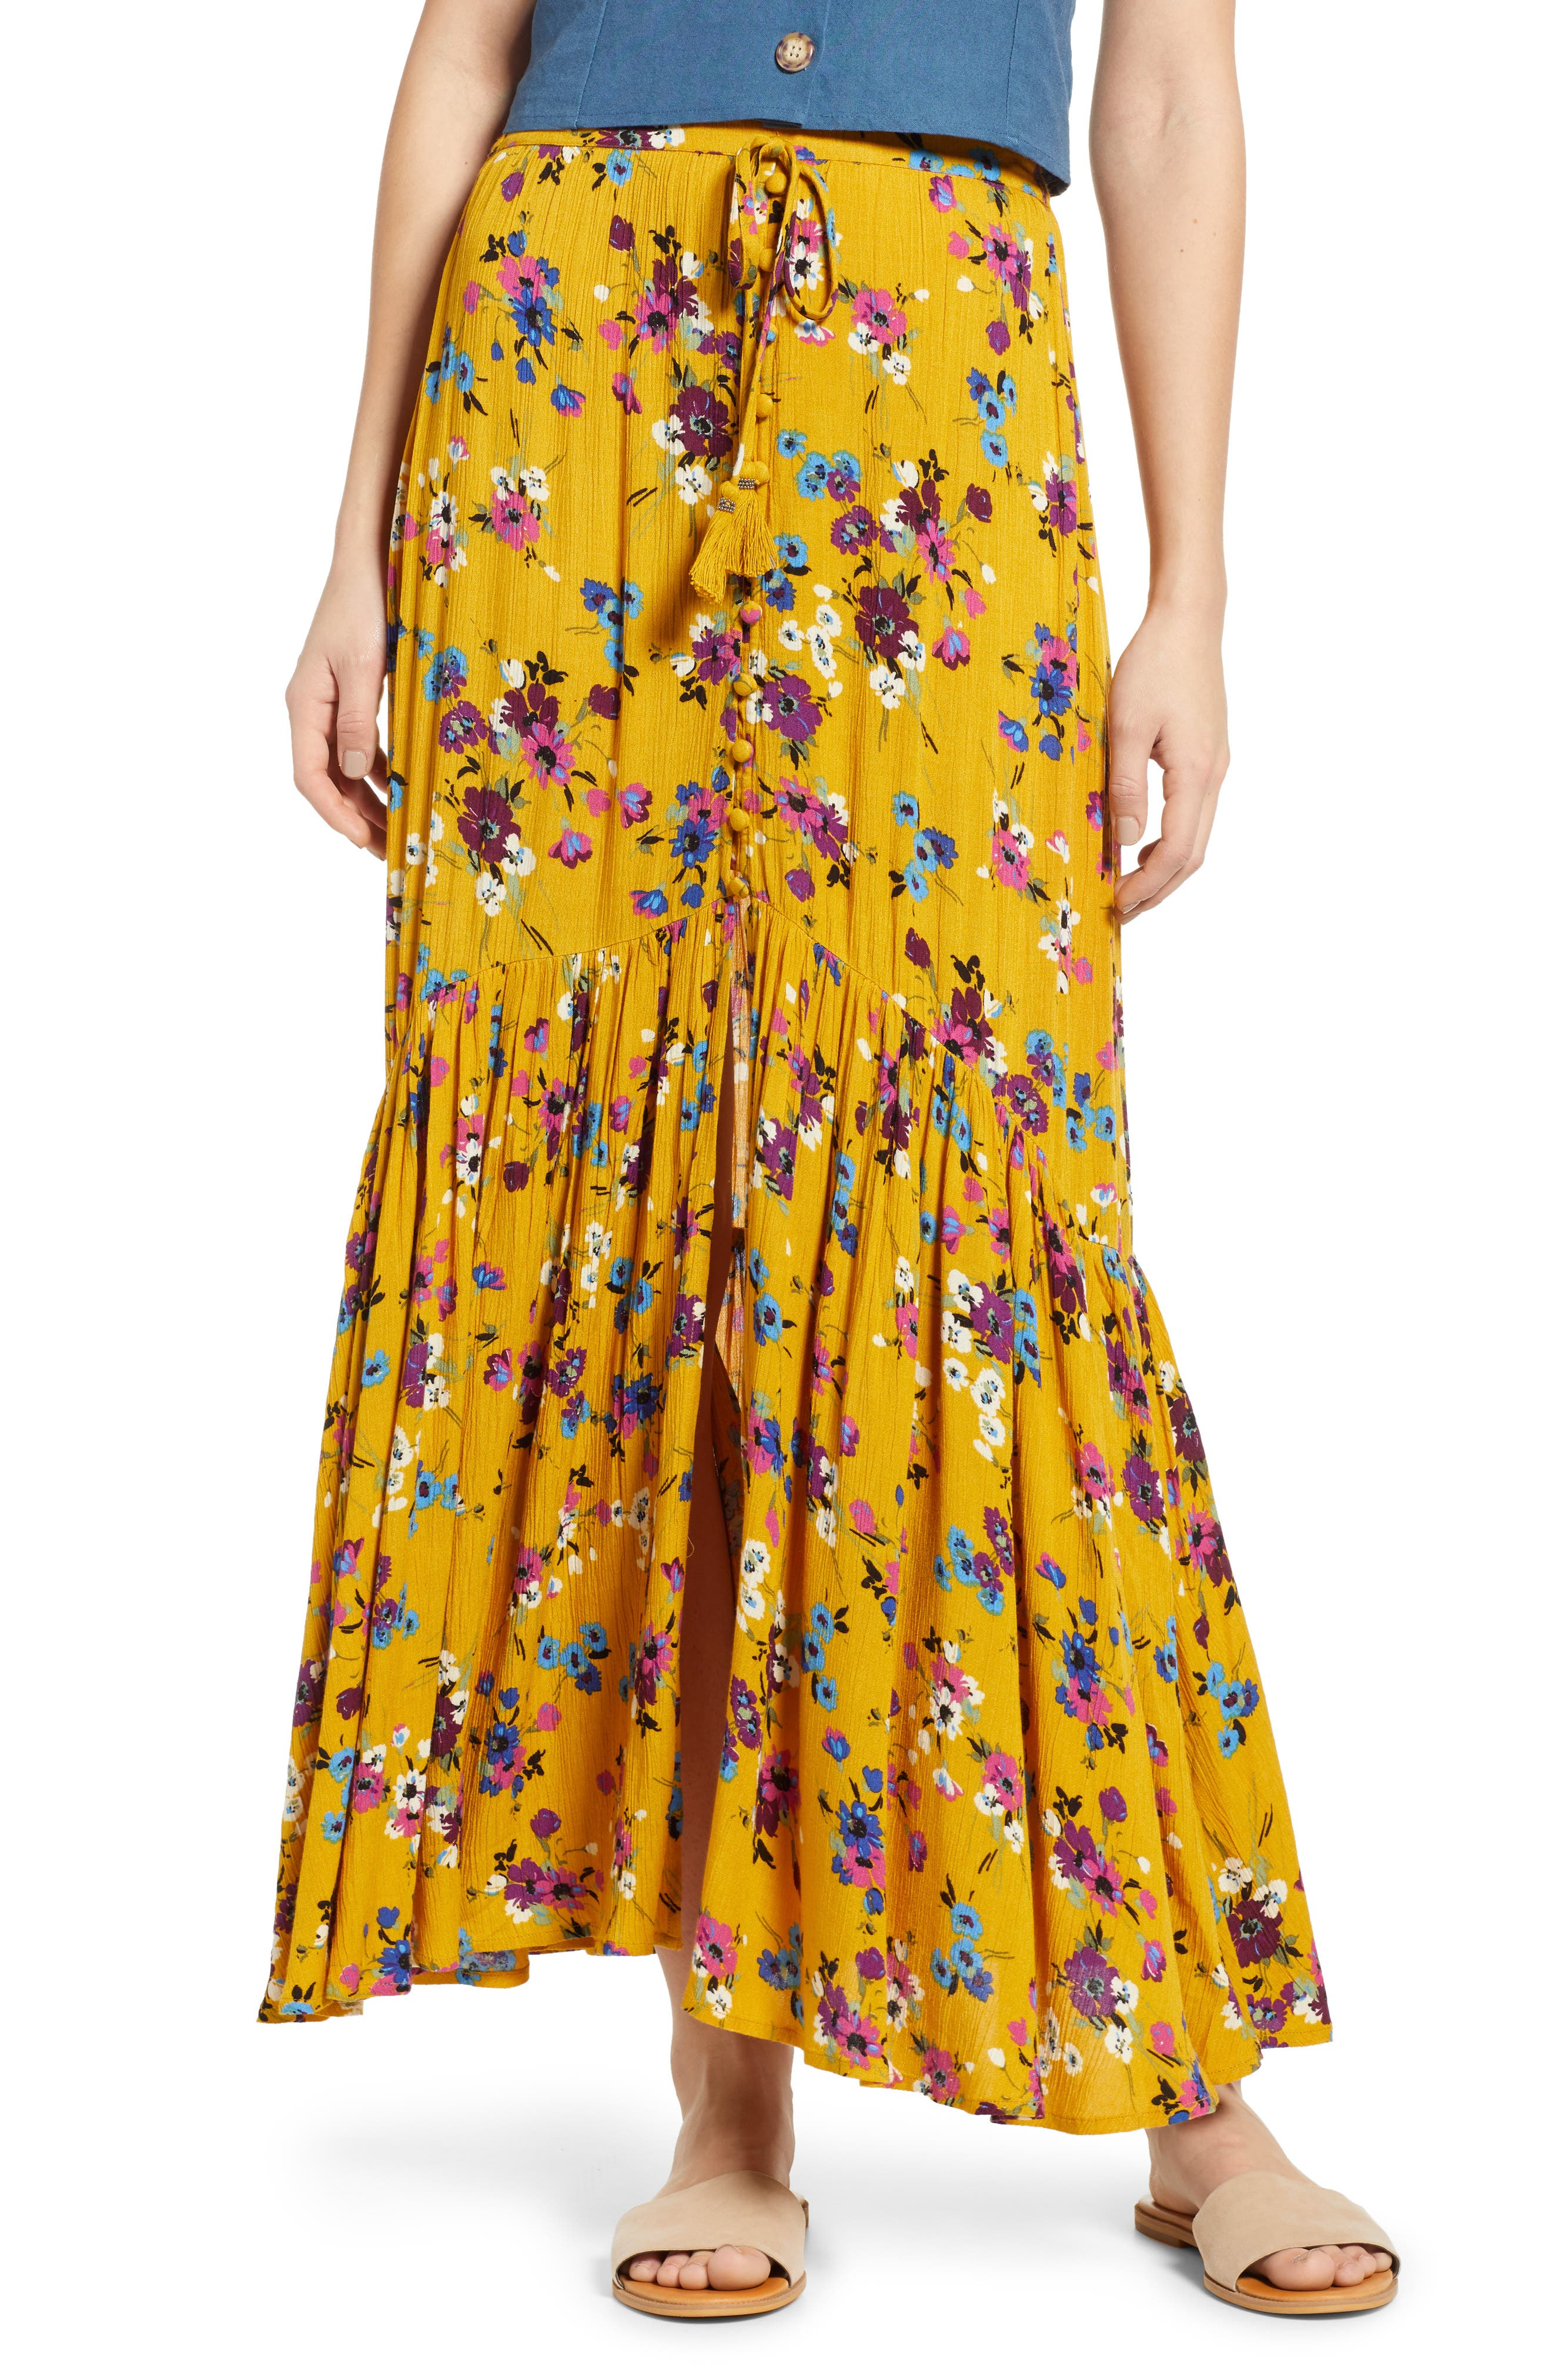 BAND OF GYPSIES, Marseille Button Front Maxi Skirt, Main thumbnail 1, color, 700